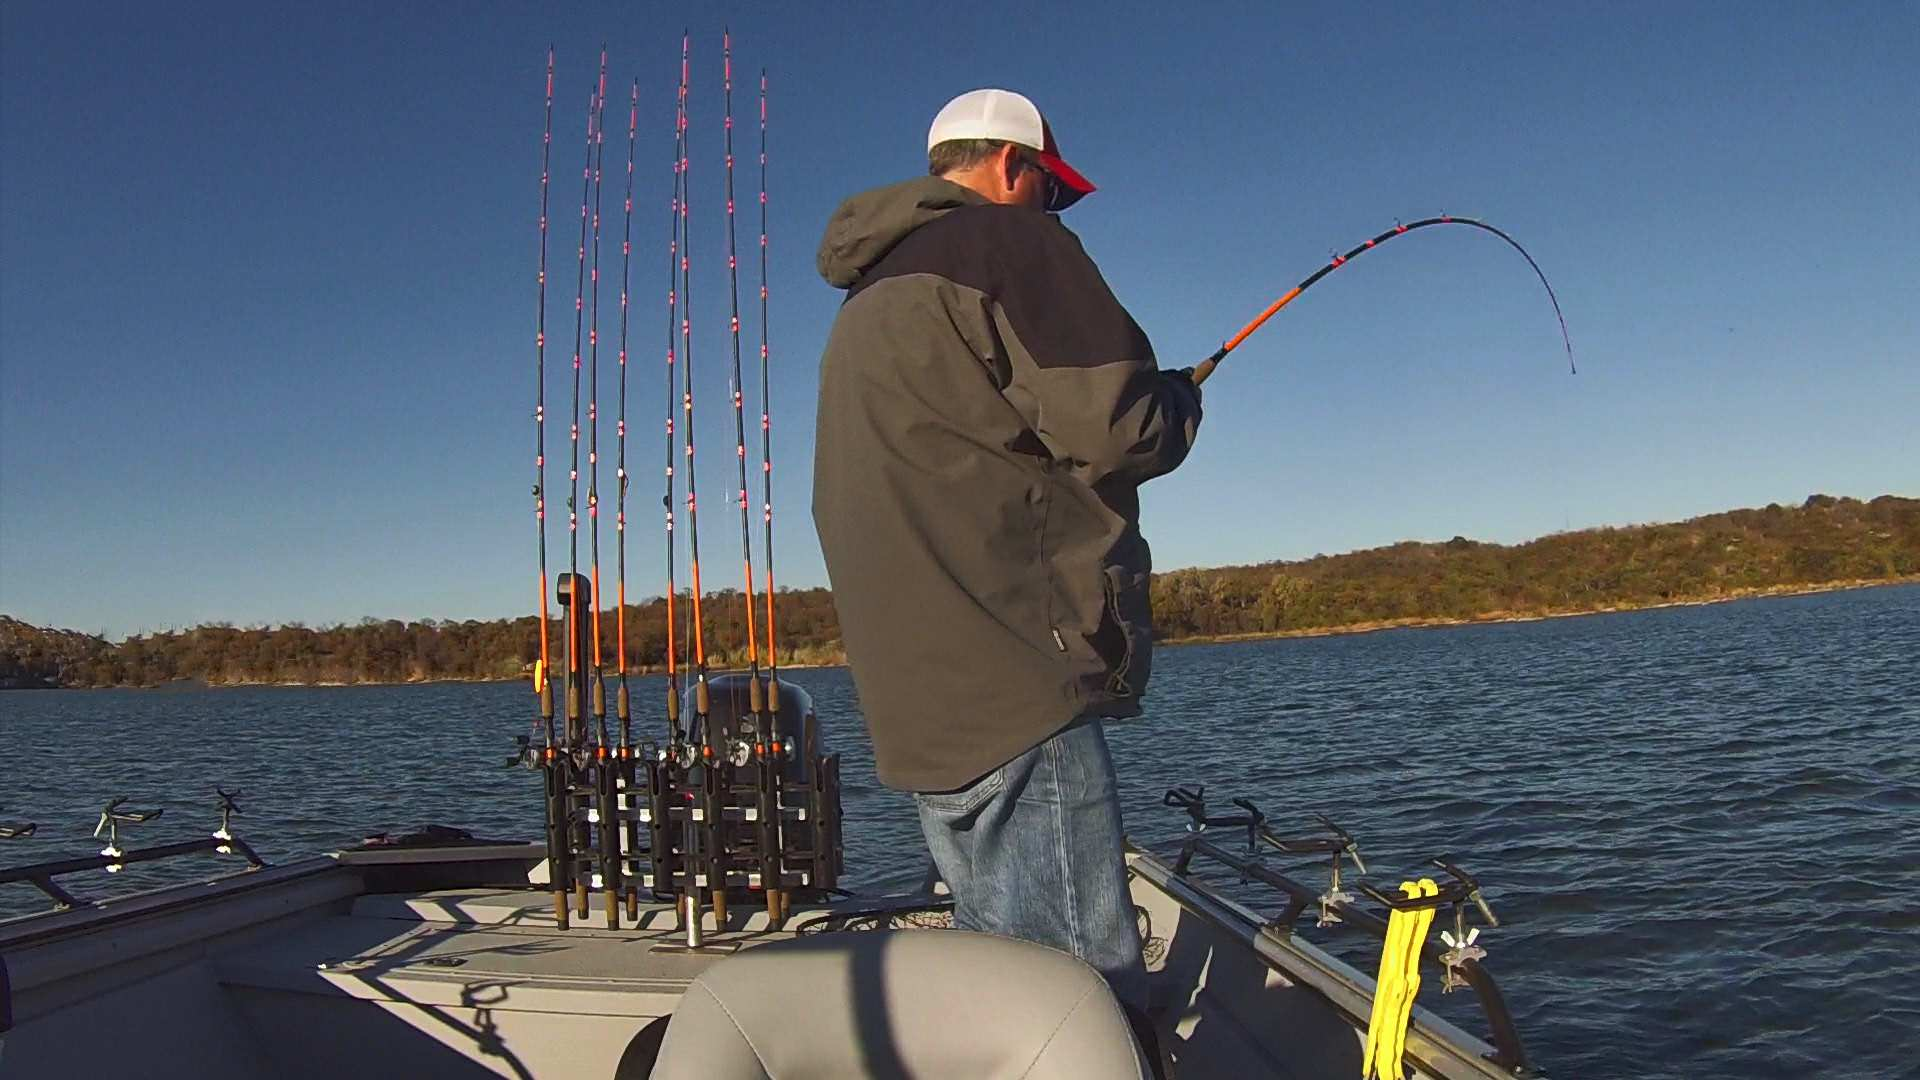 Slip sinker rig the one must know catfish rig for Catfish fishing gear